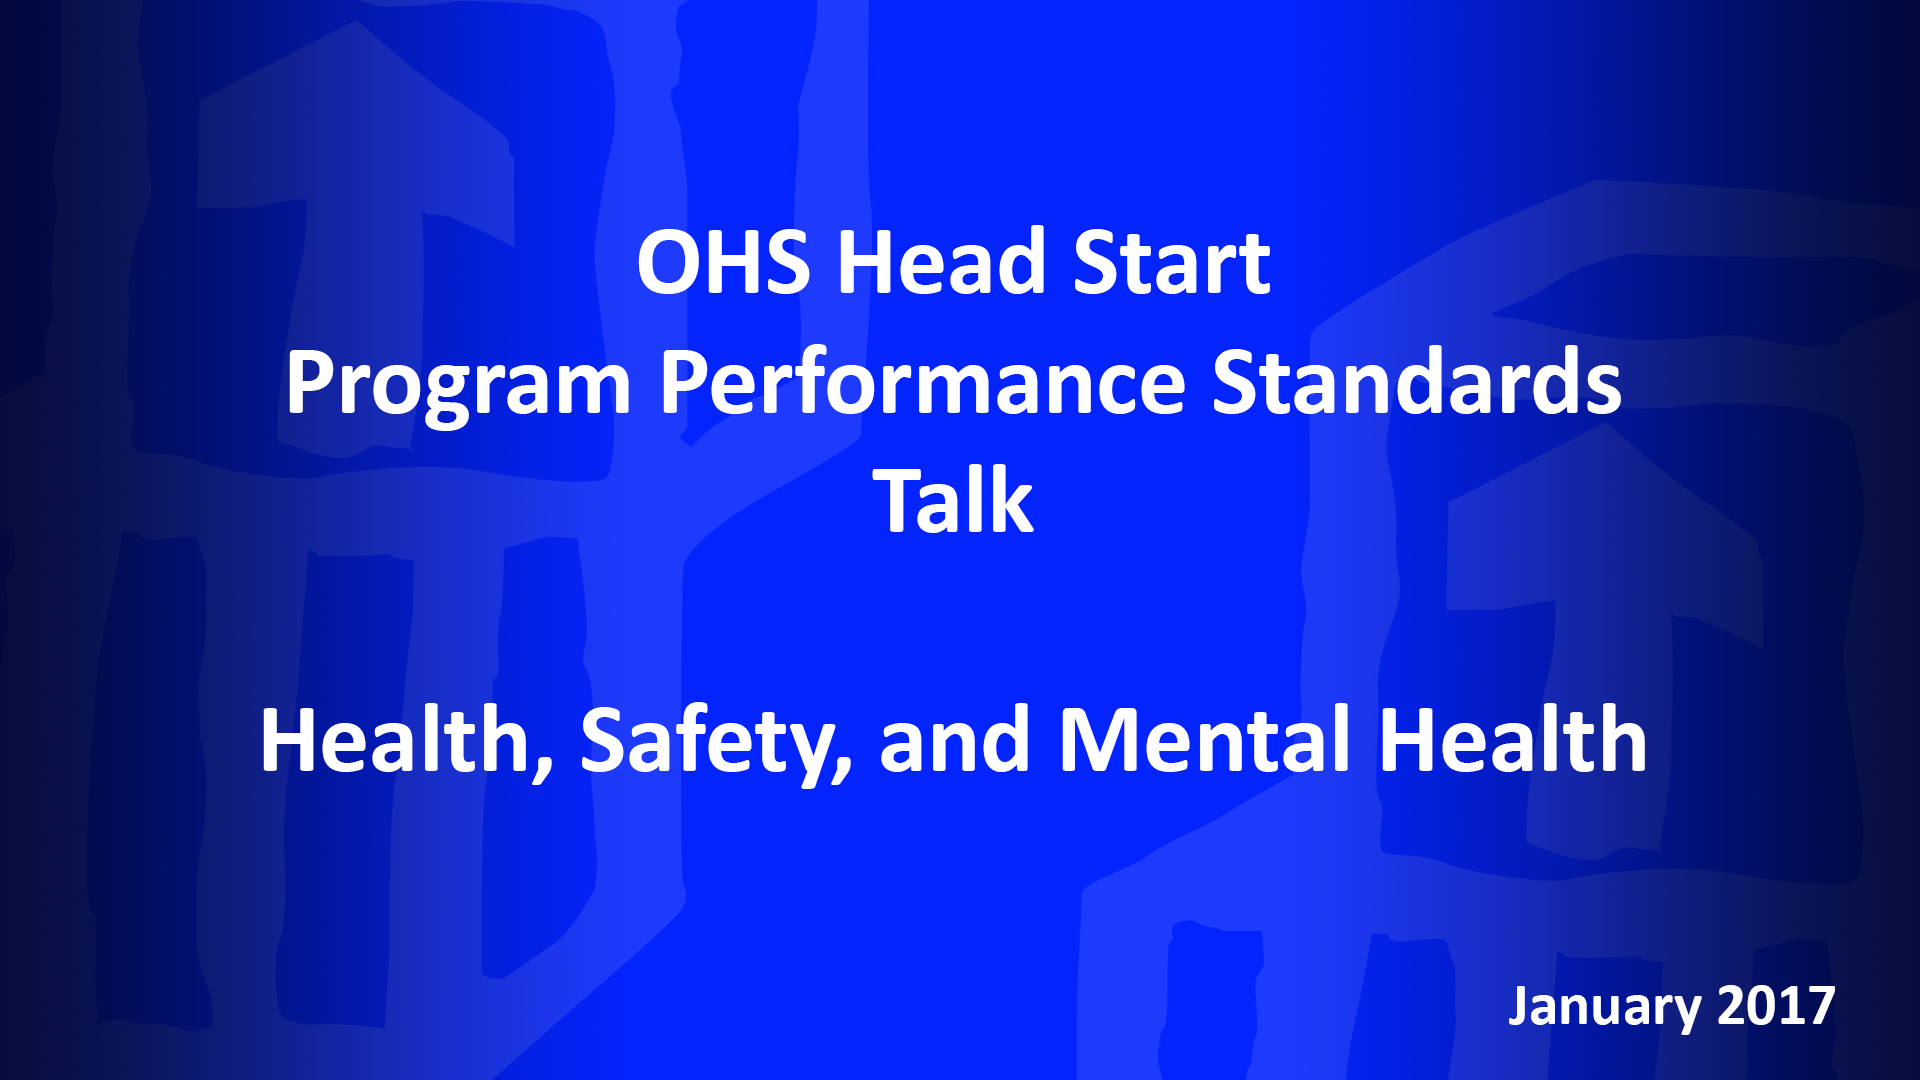 January OHS HSPPS Talk: Health, Safety, and Mental Health